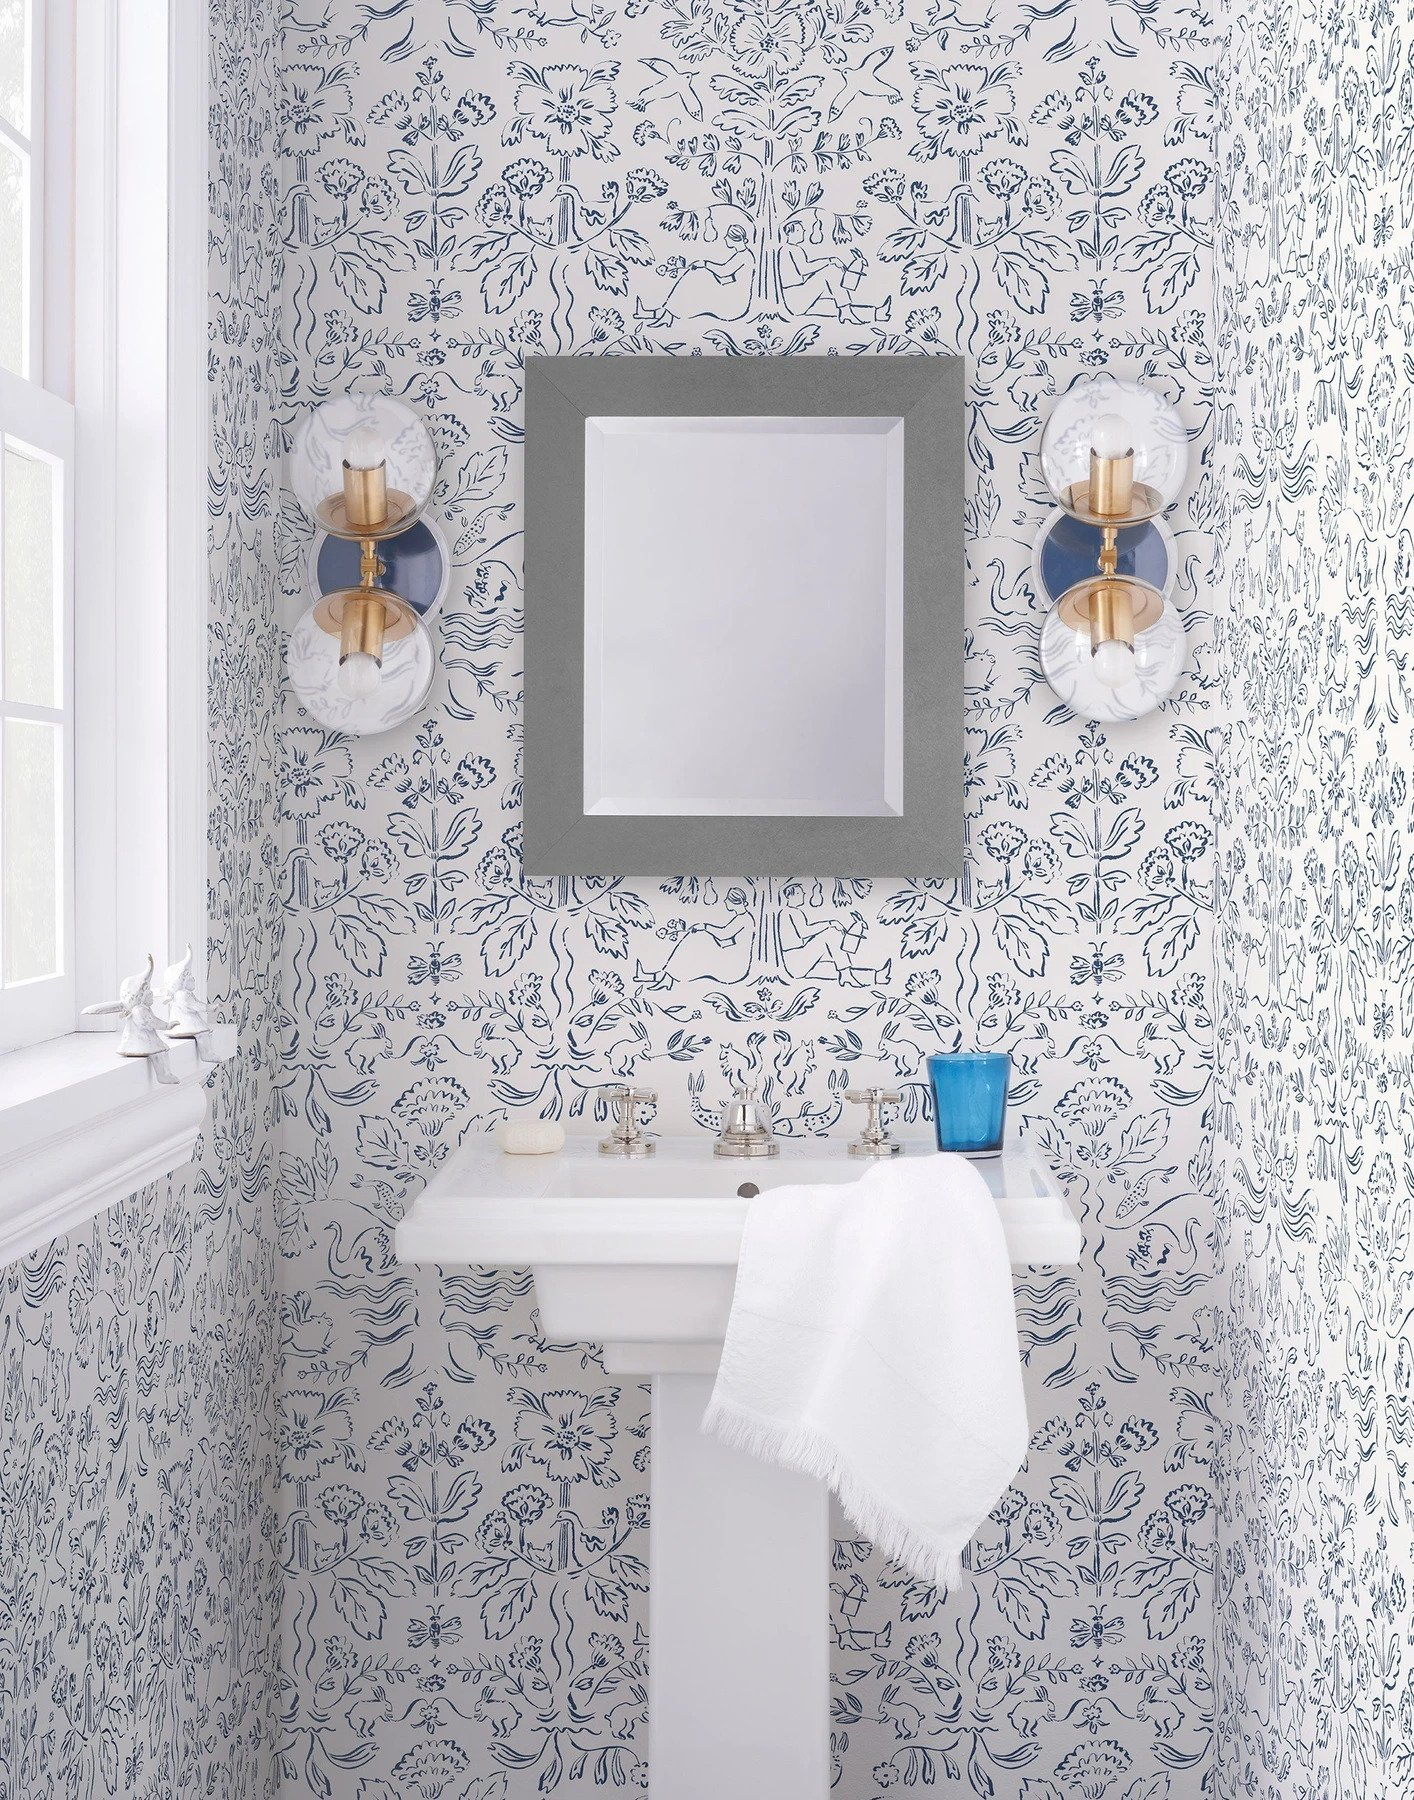 Hygge and West Storyline Wallpaper in Delft Blue